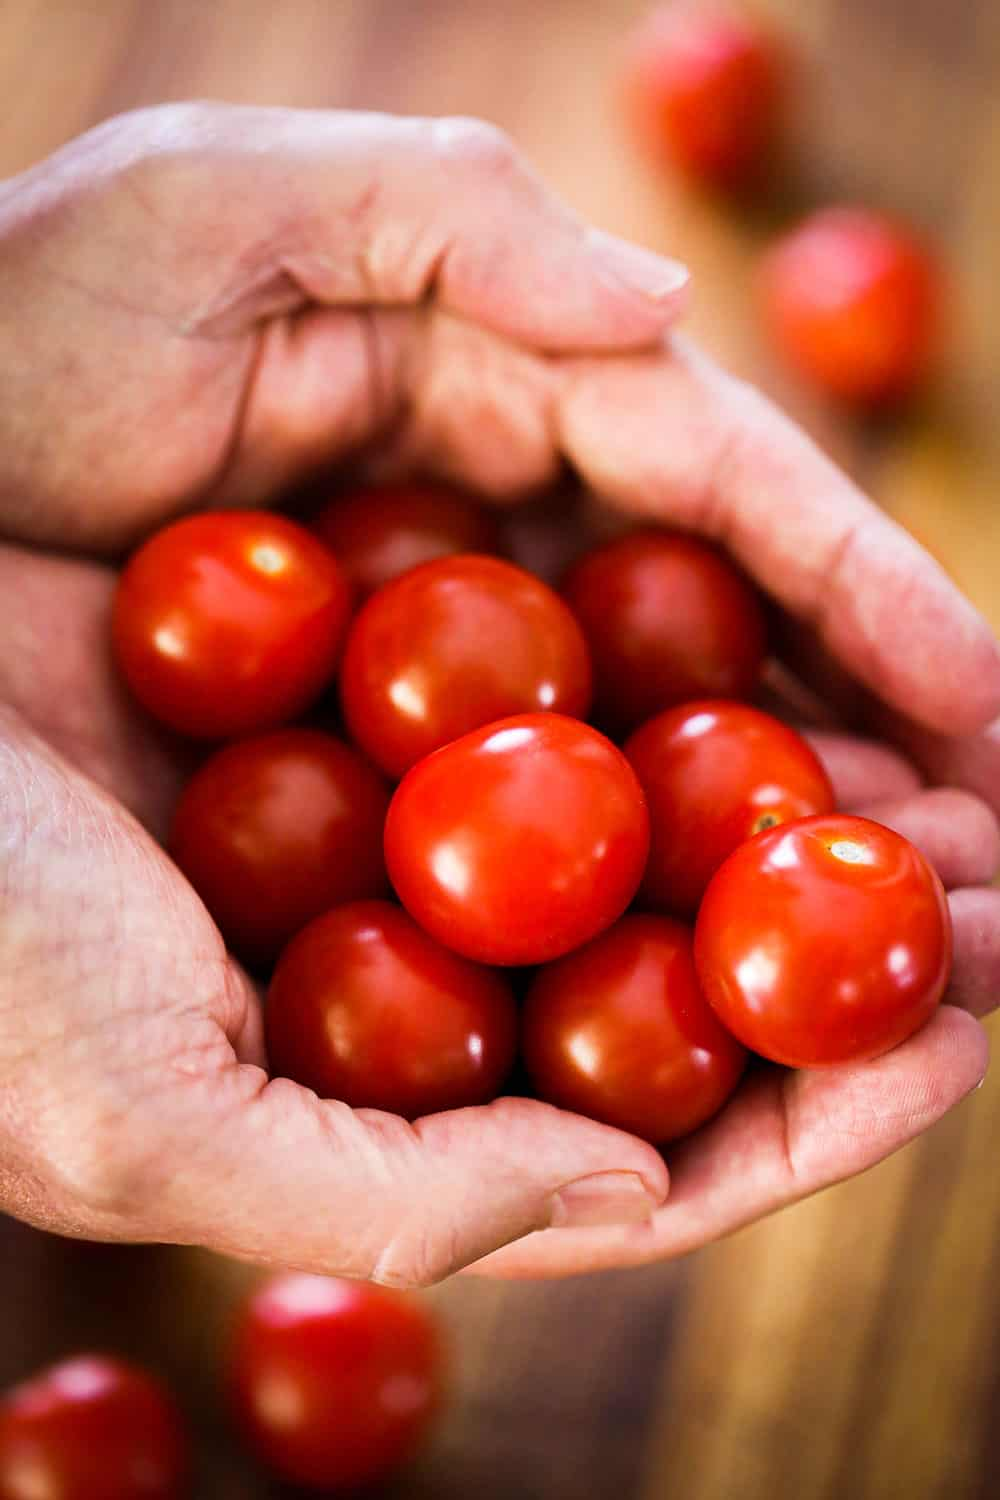 Two hands holding a bunch of ripe cherry tomatoes.